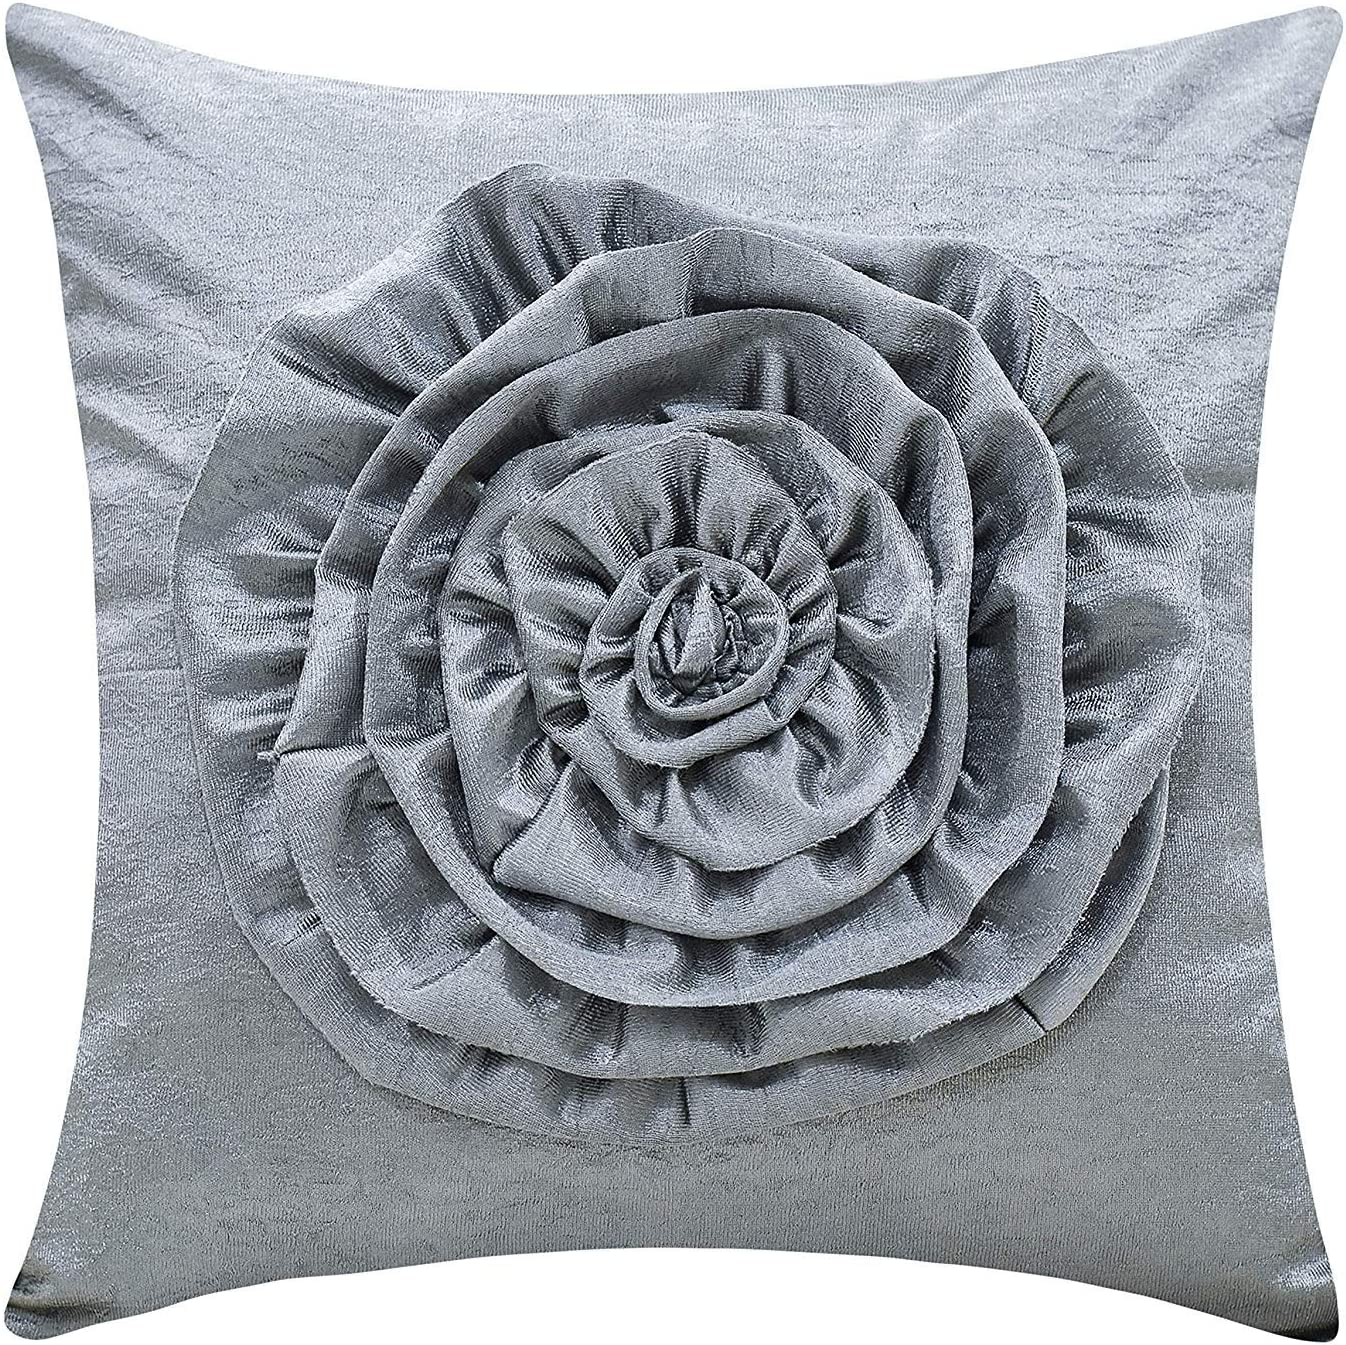 The White Petals Silver Gray Throw Pillow Cover (3D Flower, 18x18 inch, Pack of 1)